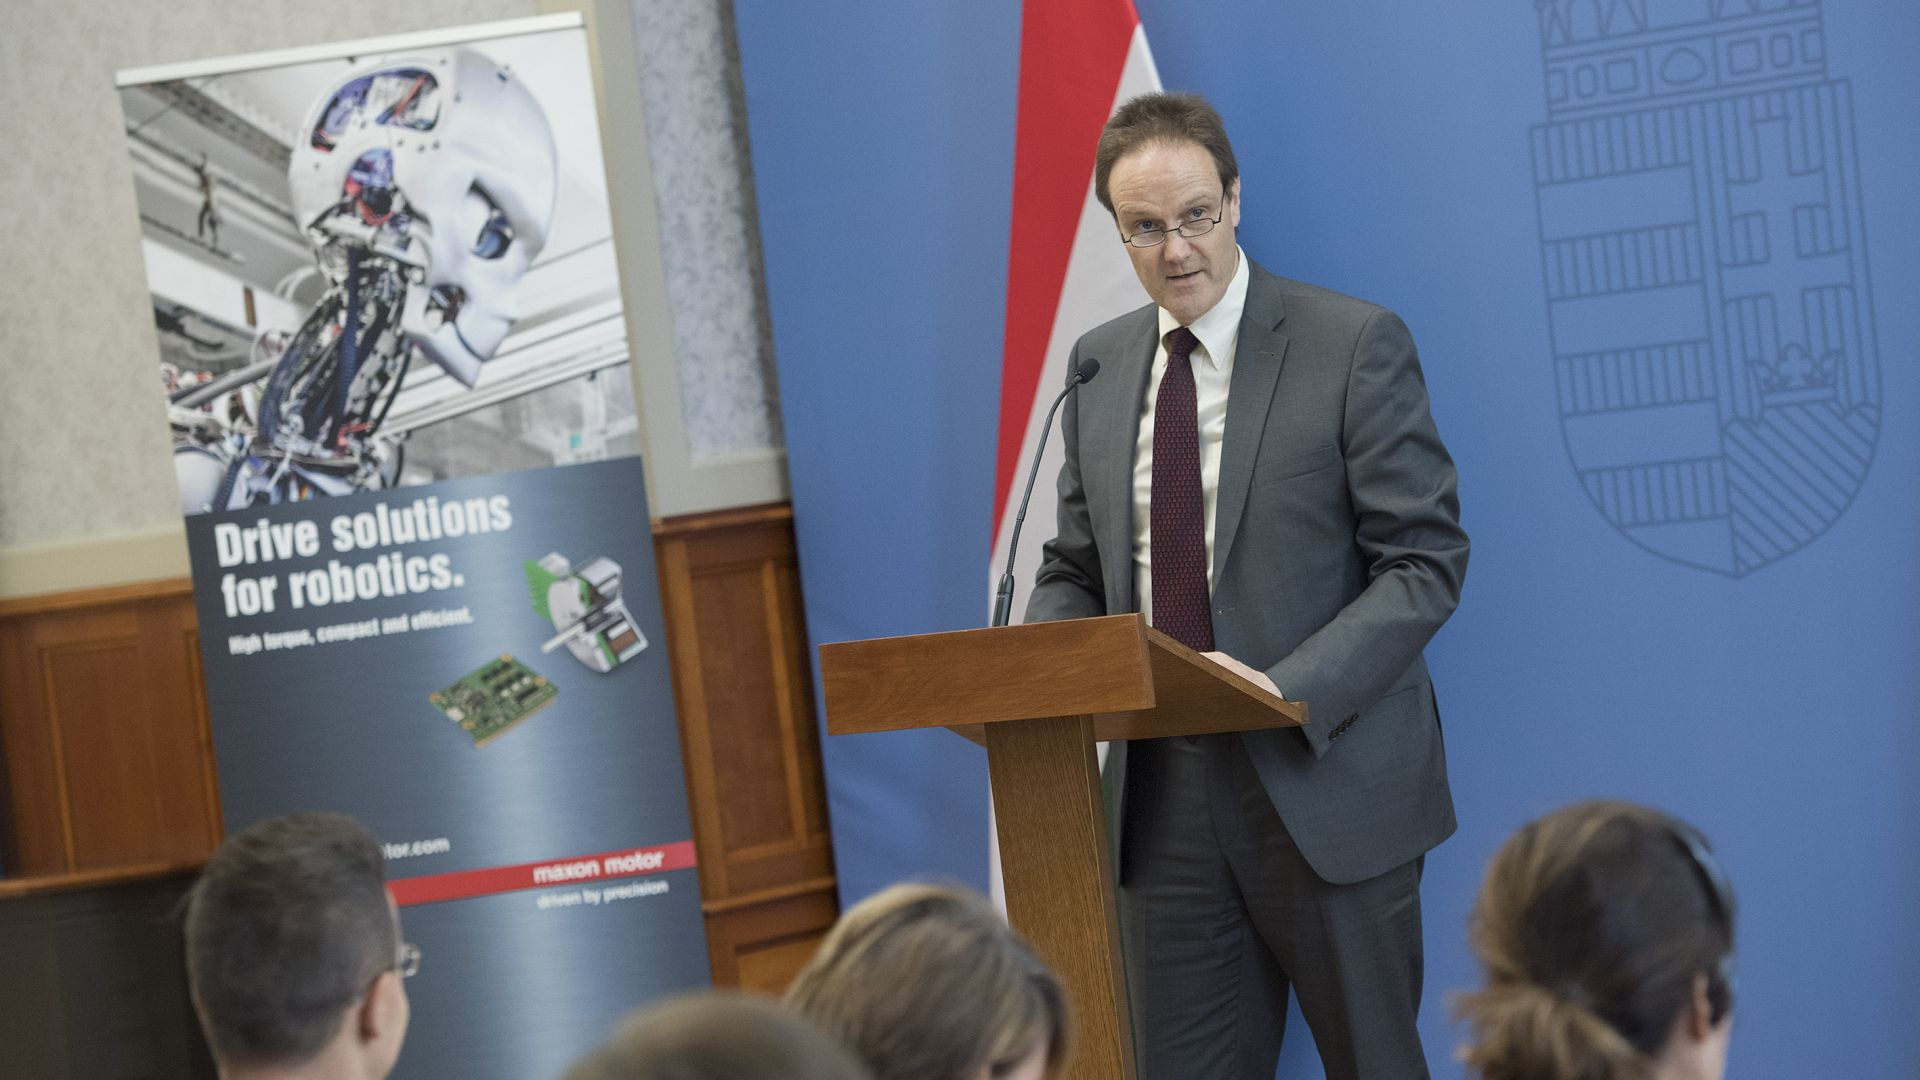 NASA-supplier Swiss company to expand with new technology in Veszprém